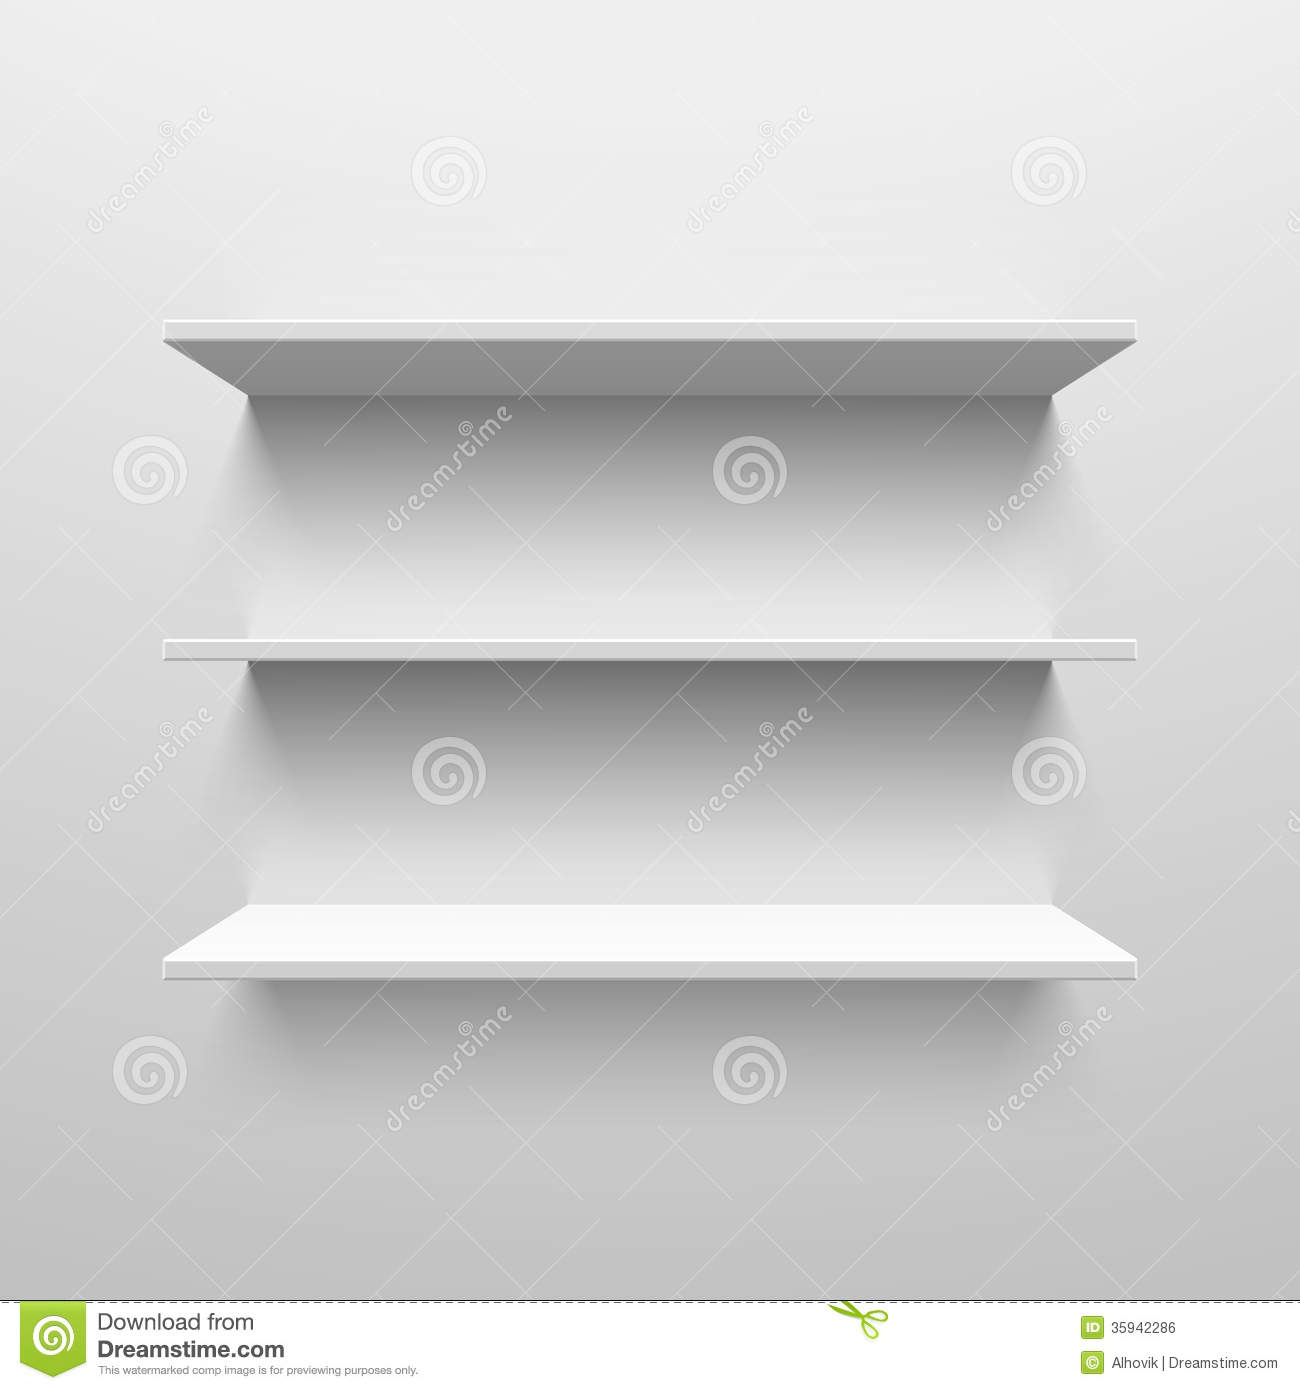 Wall Shelves Stock Vector Illustration Of Background